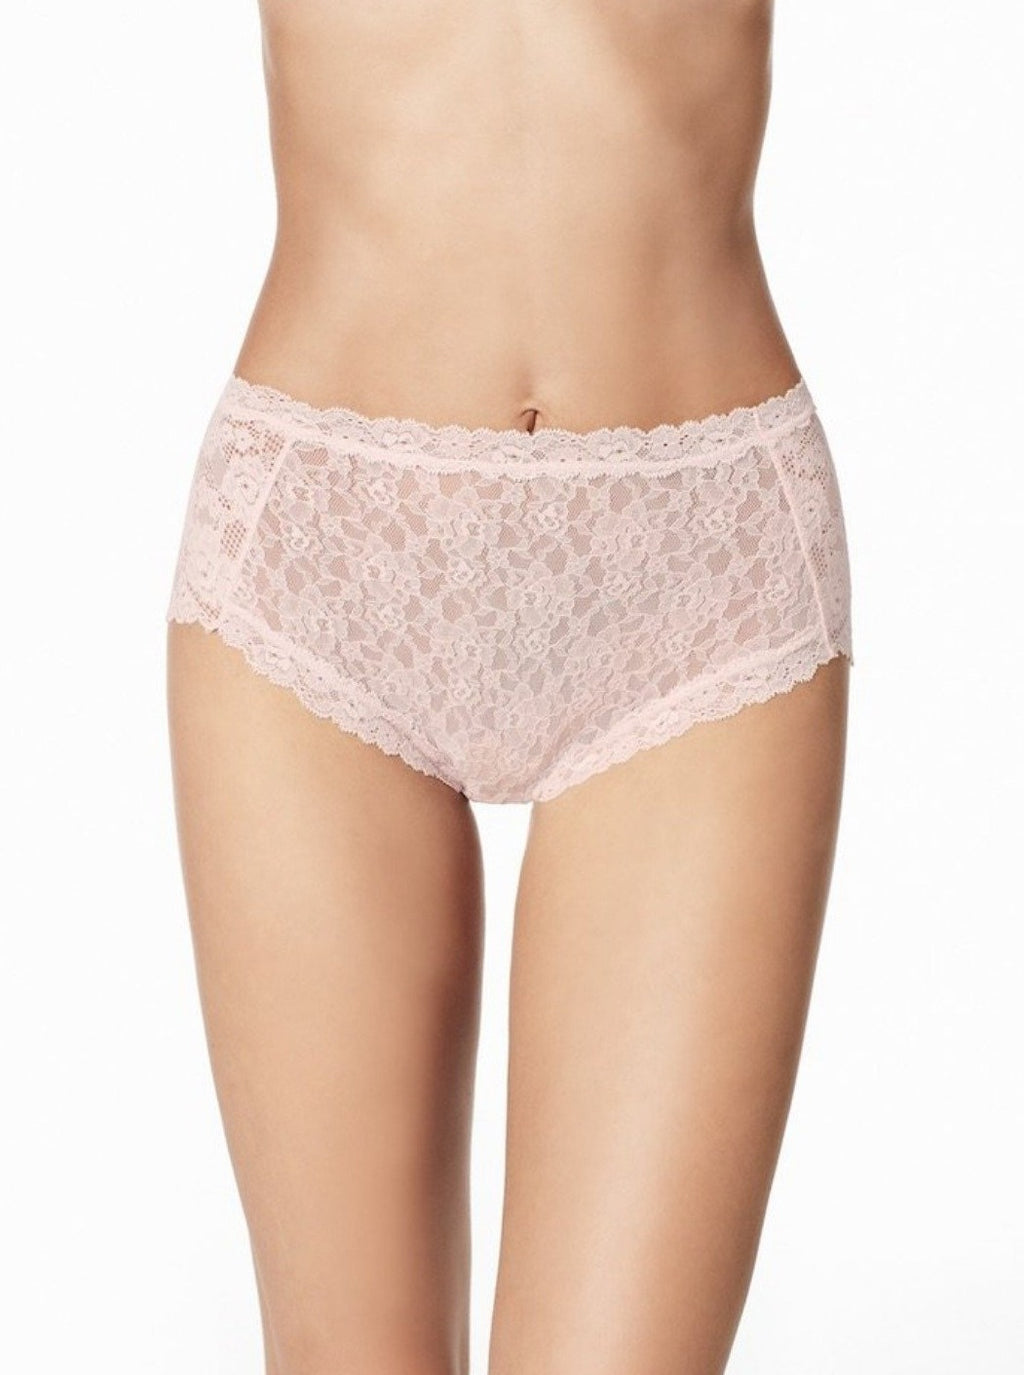 Light pink. New high rise panties manufactured in a combination of high stretch blonda lace, trimmed with smooth, adaptable lace edging. With no elastic around the legs or waist, these garments don't leave marks and are extra-comfortable. Sewn-in cotton gusset for comfort.